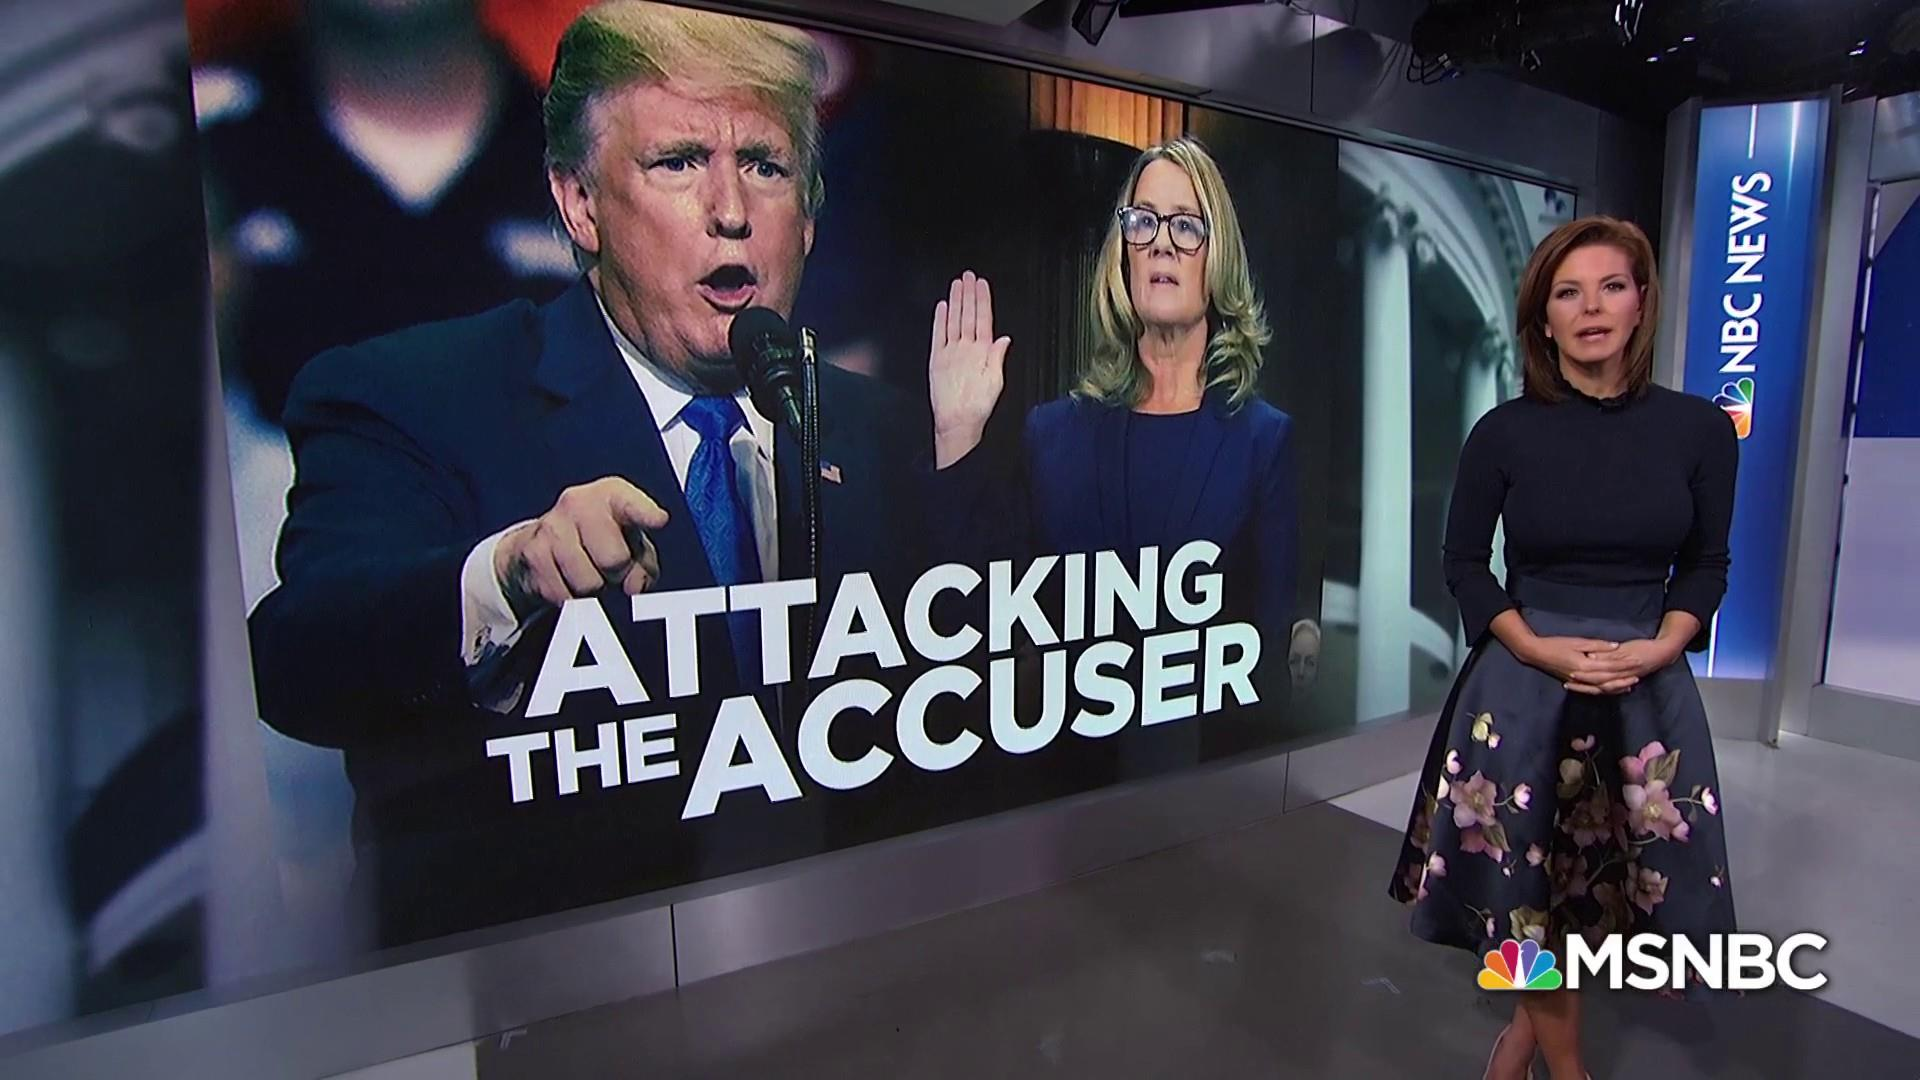 President Trump publicly attacks Dr. Christine Blasey Ford